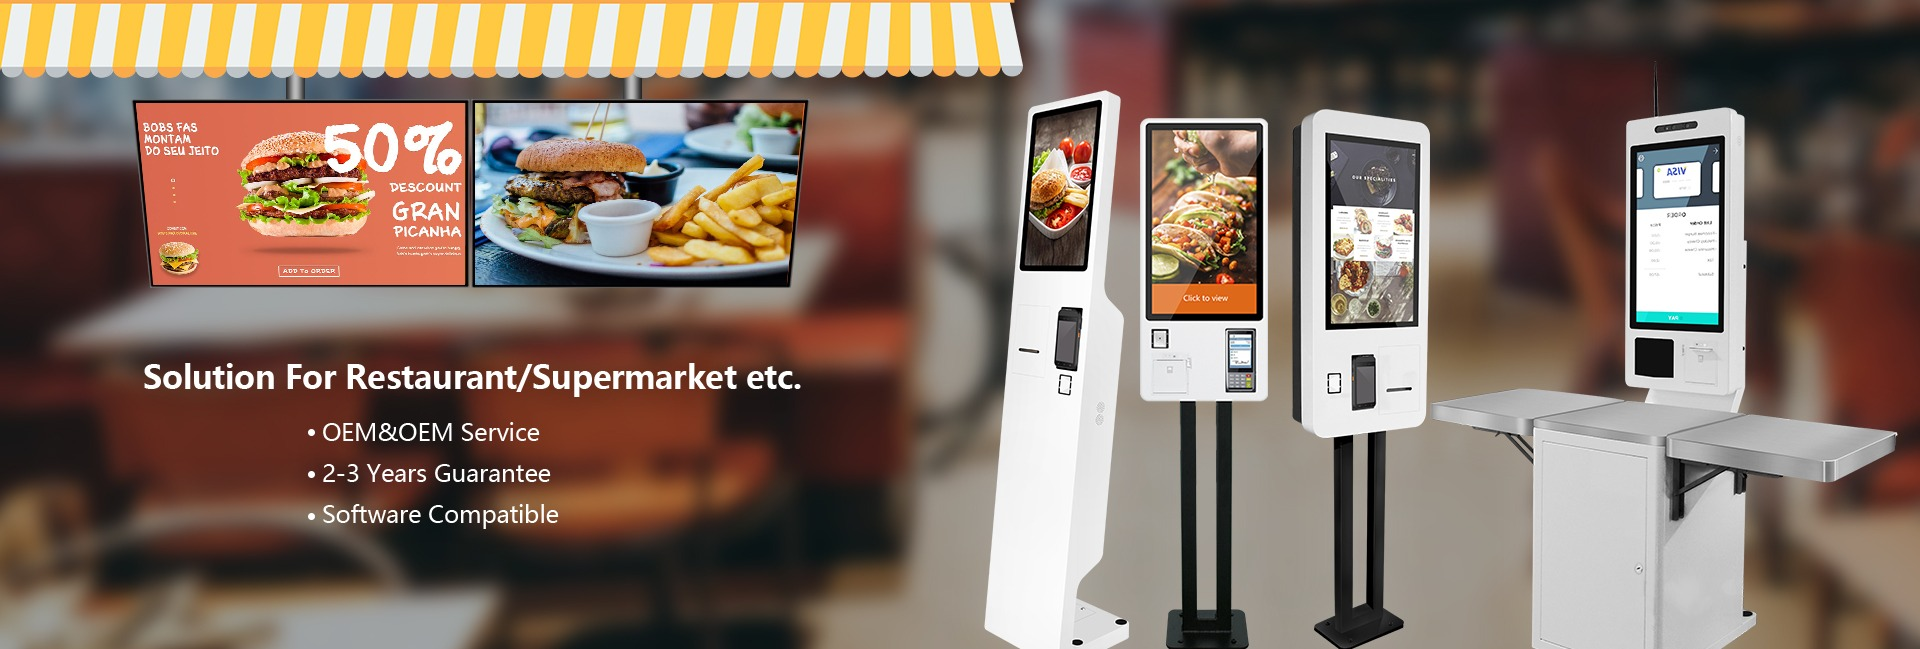 food ordering kiosk Digital Screens and self order kiosk